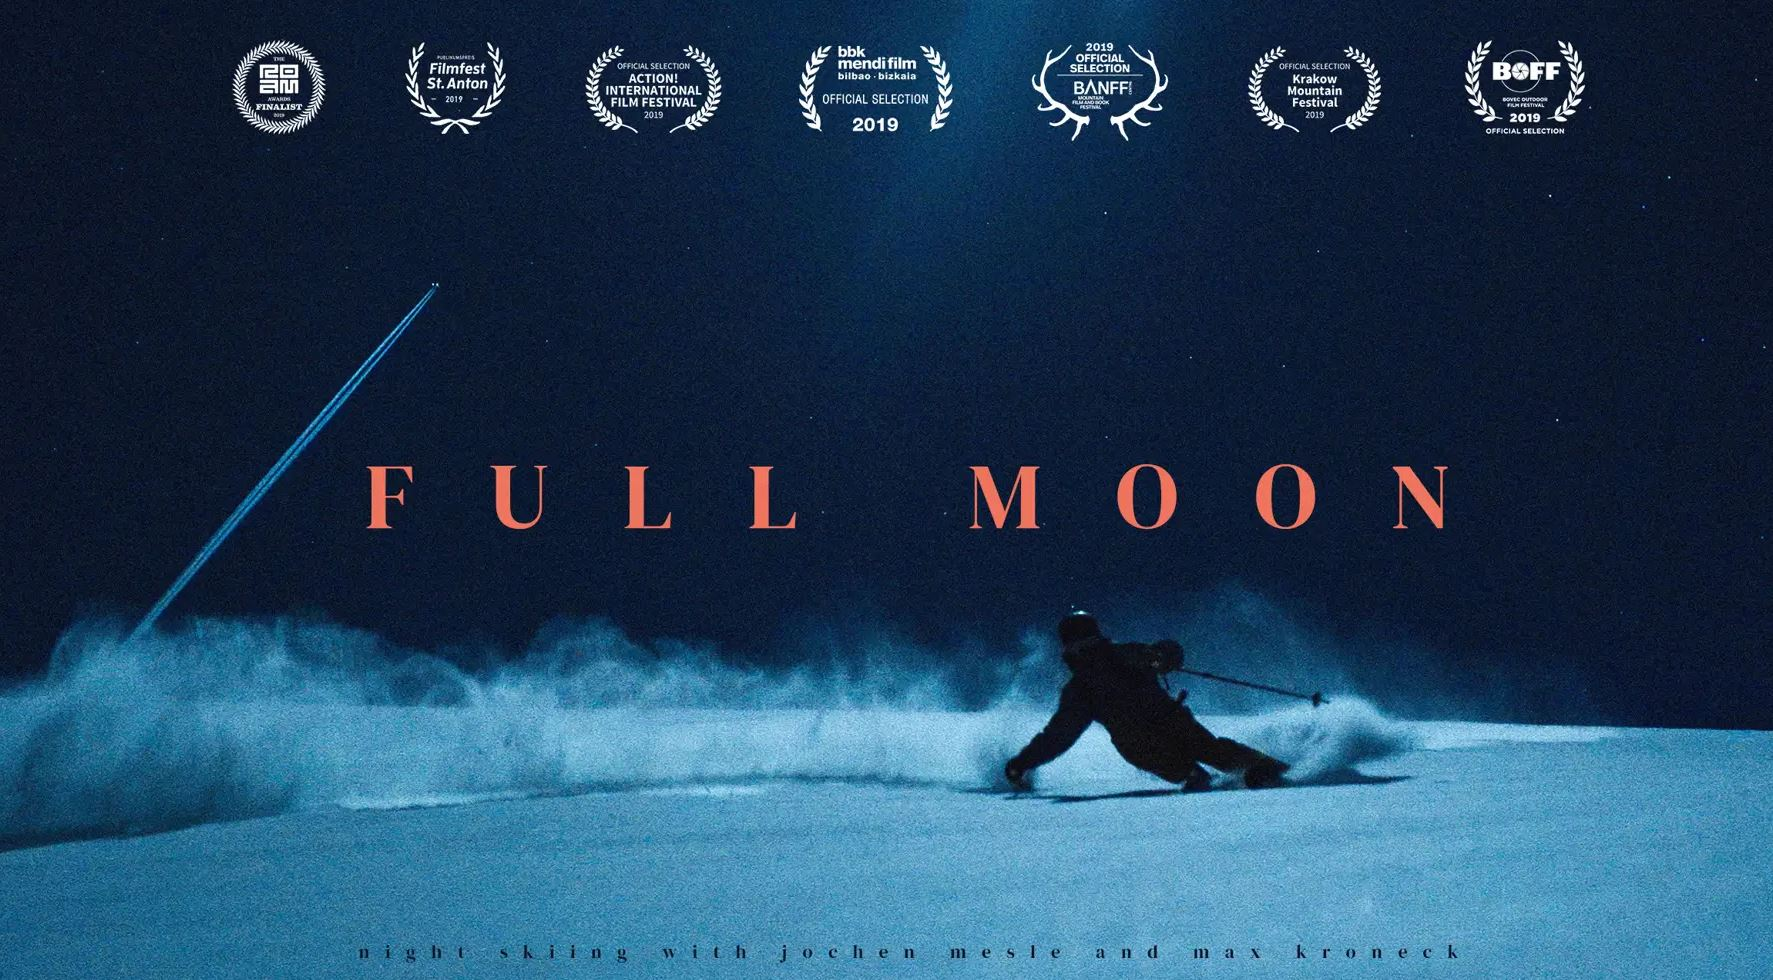 Full Moon – Night Skiing Without Artificial Light